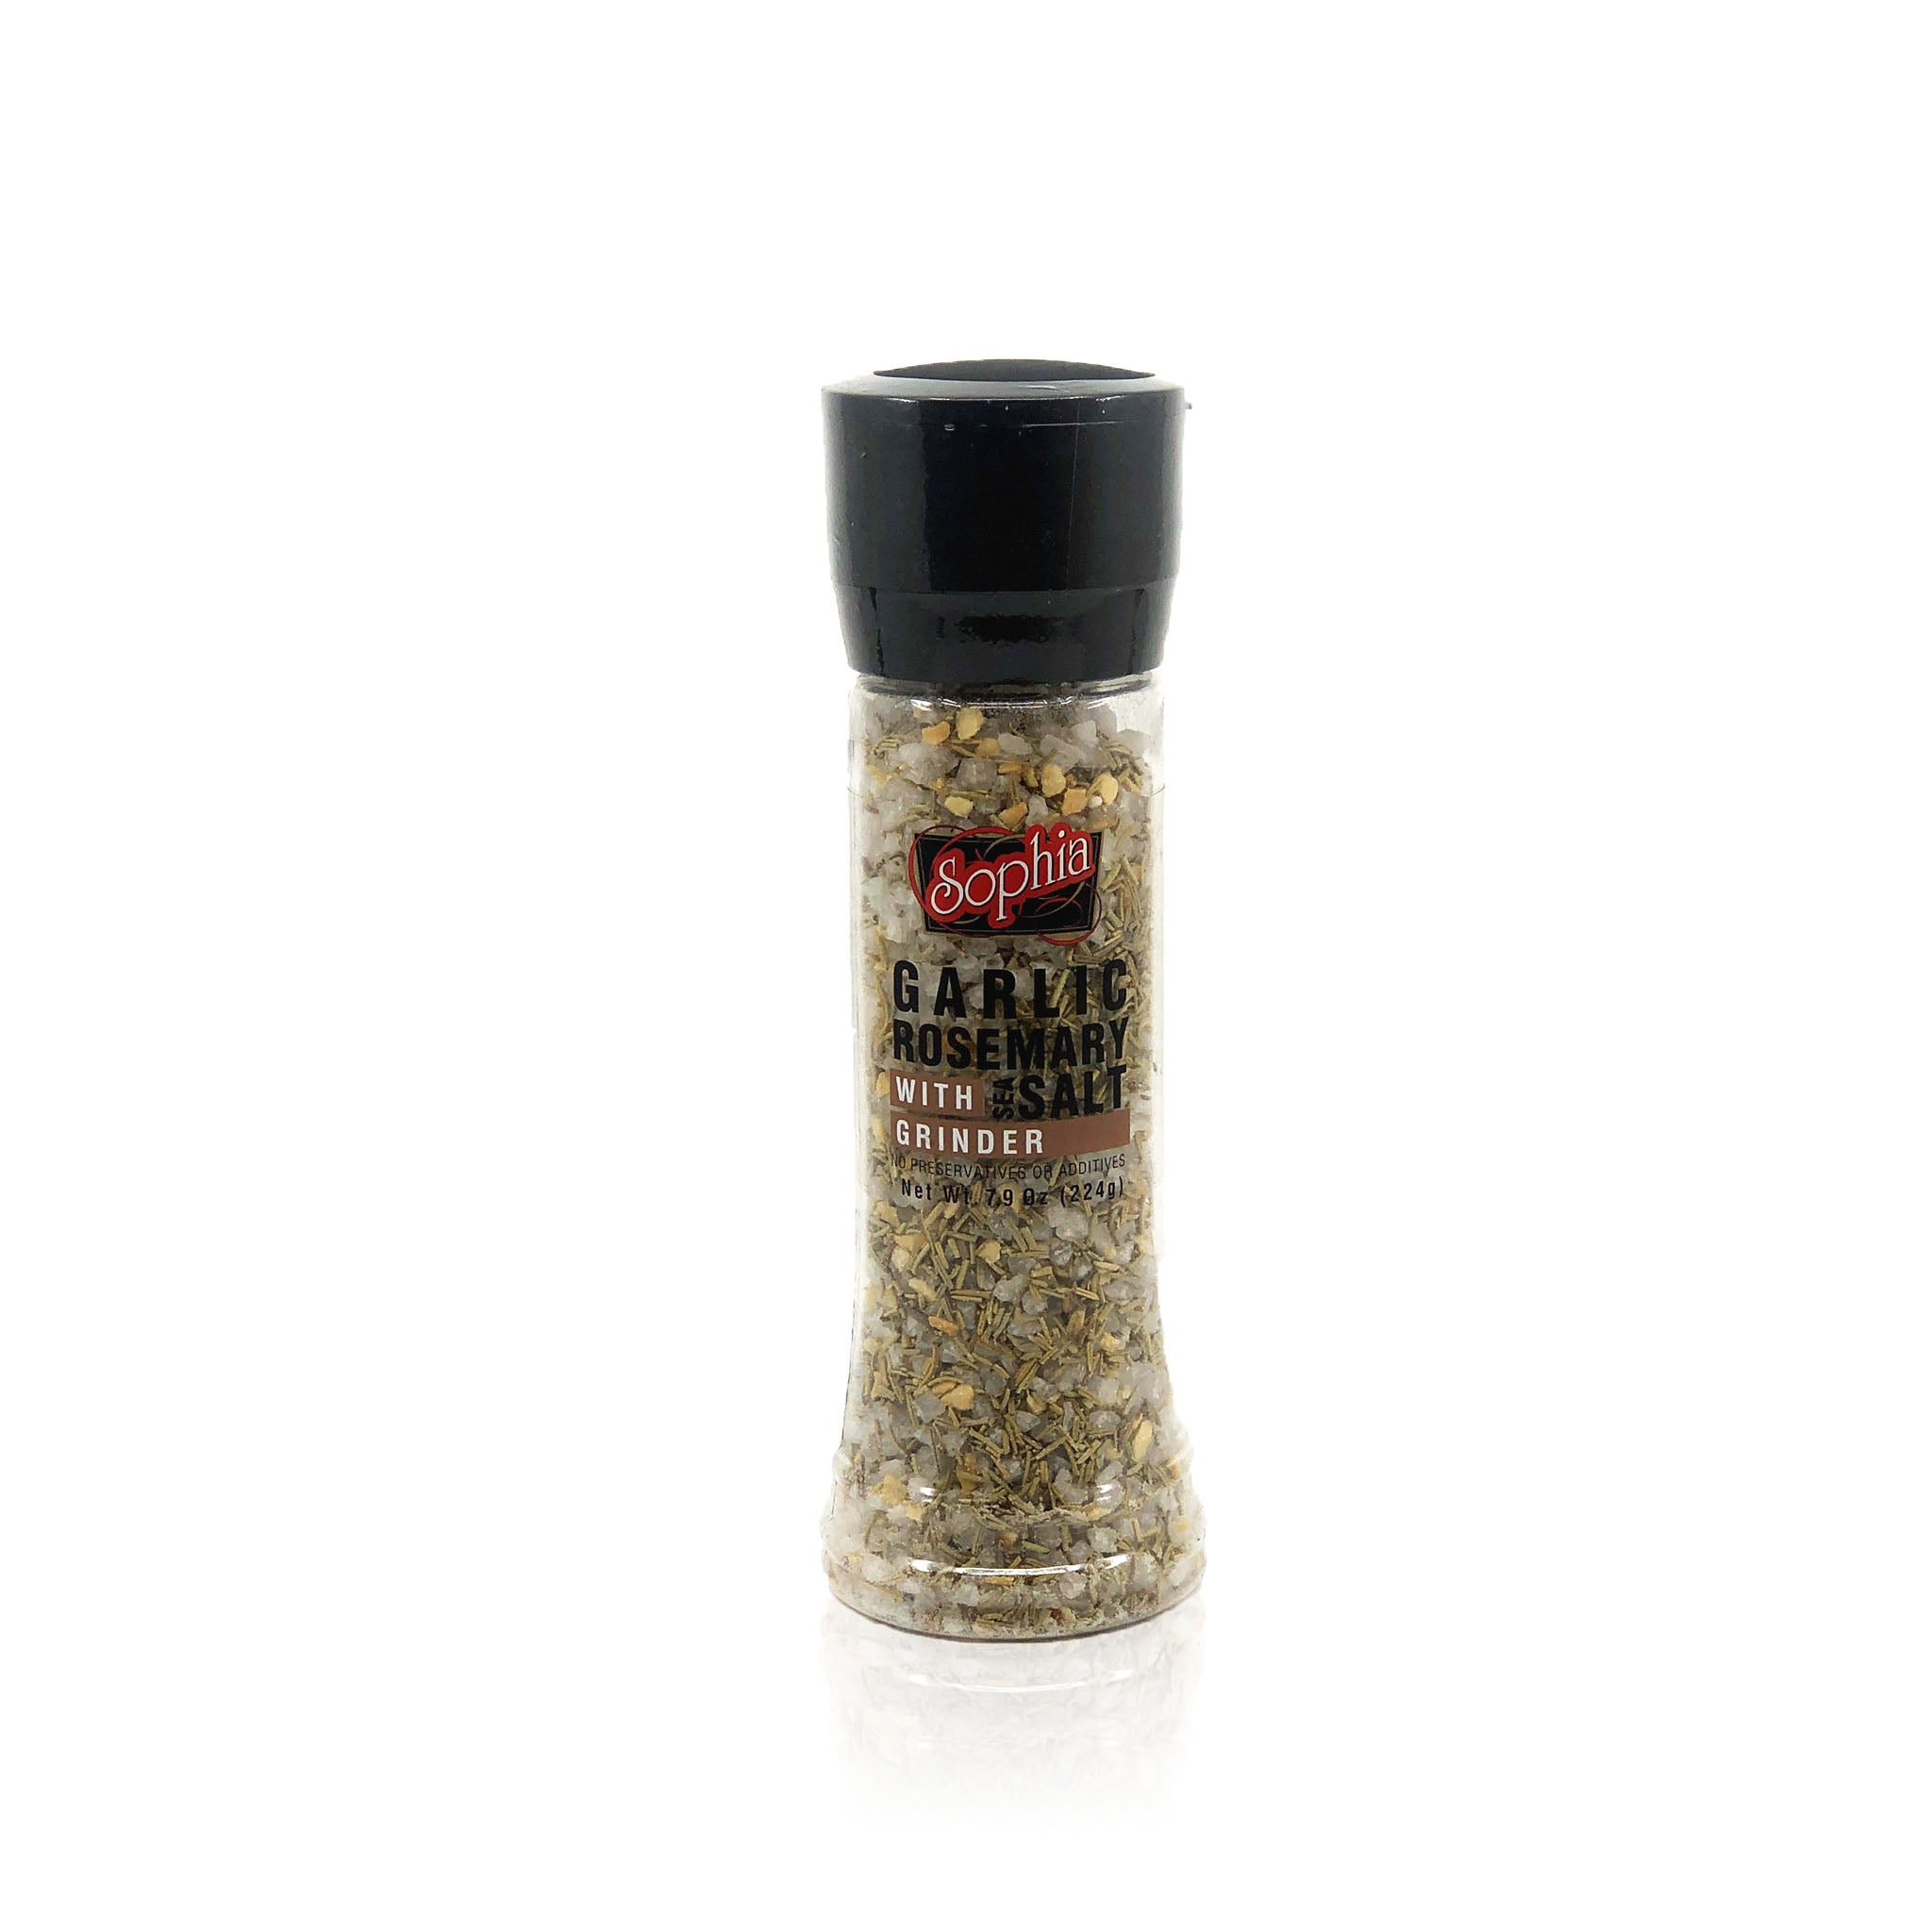 Sophia S&P Grinder - Garlic & Rosemary Salt